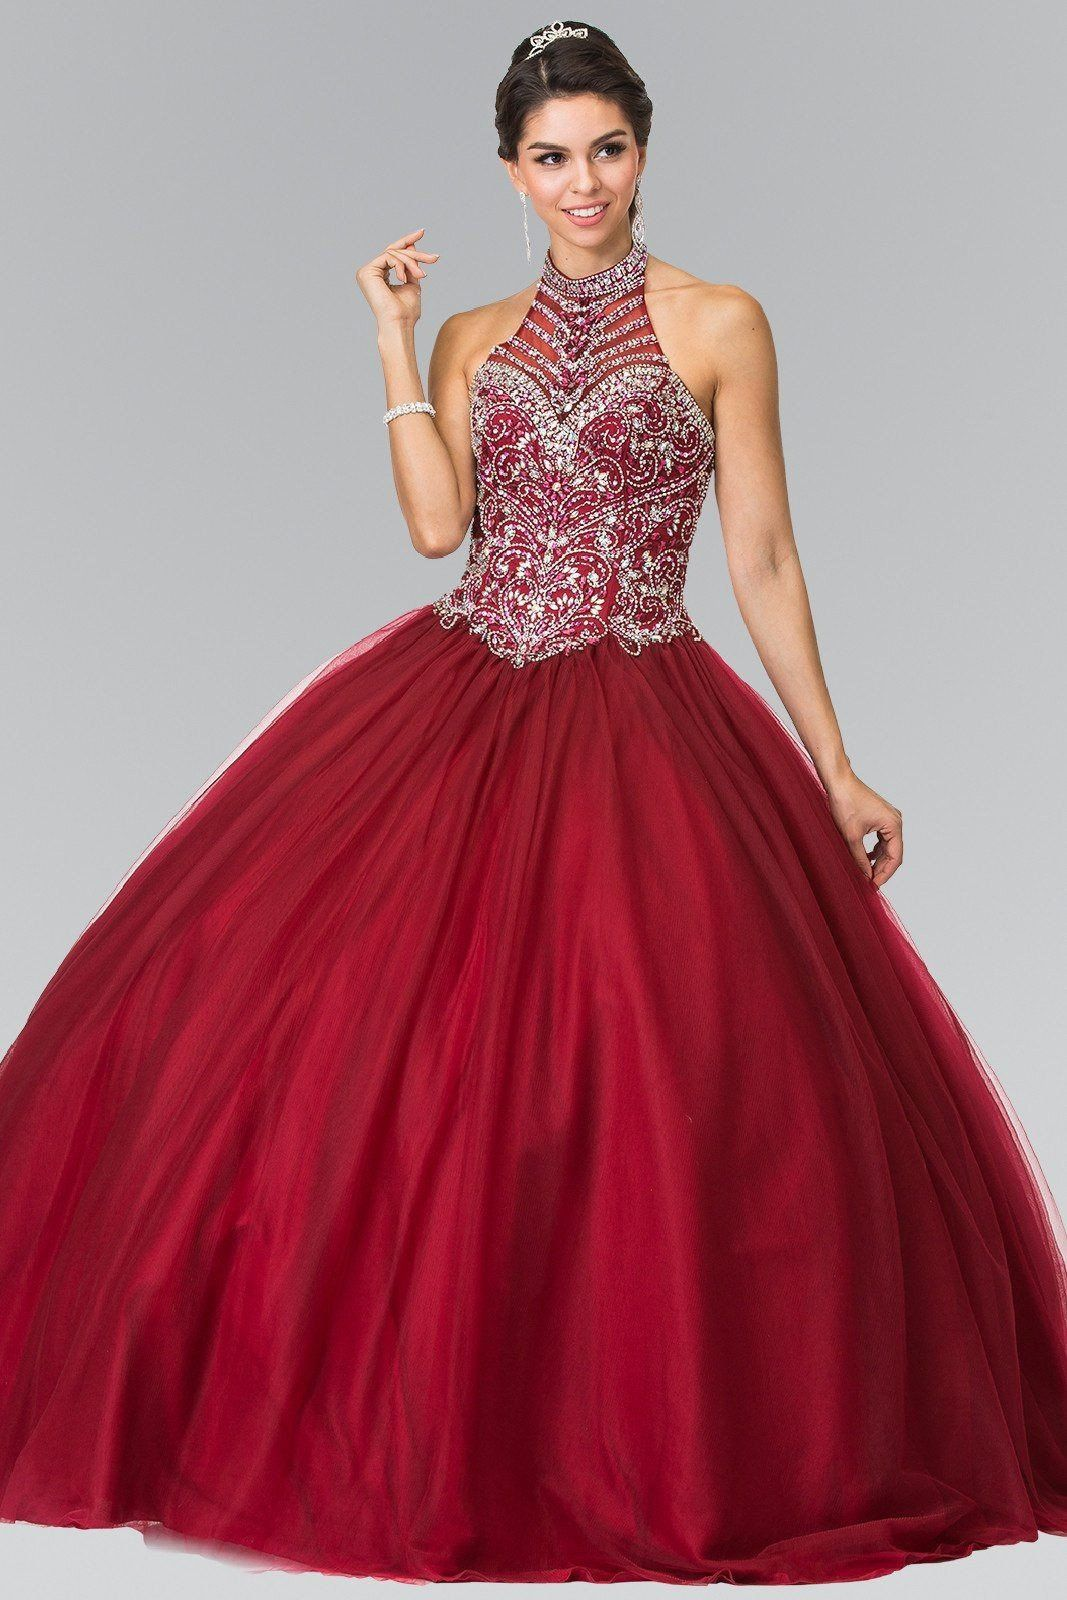 8daee29cbc Sheer illusion high neckline full rhinestone beaded bodice Ballgown prom  dress and Quinceanera sweet 15 dress. Featuring embroidered appliques  throughout ...